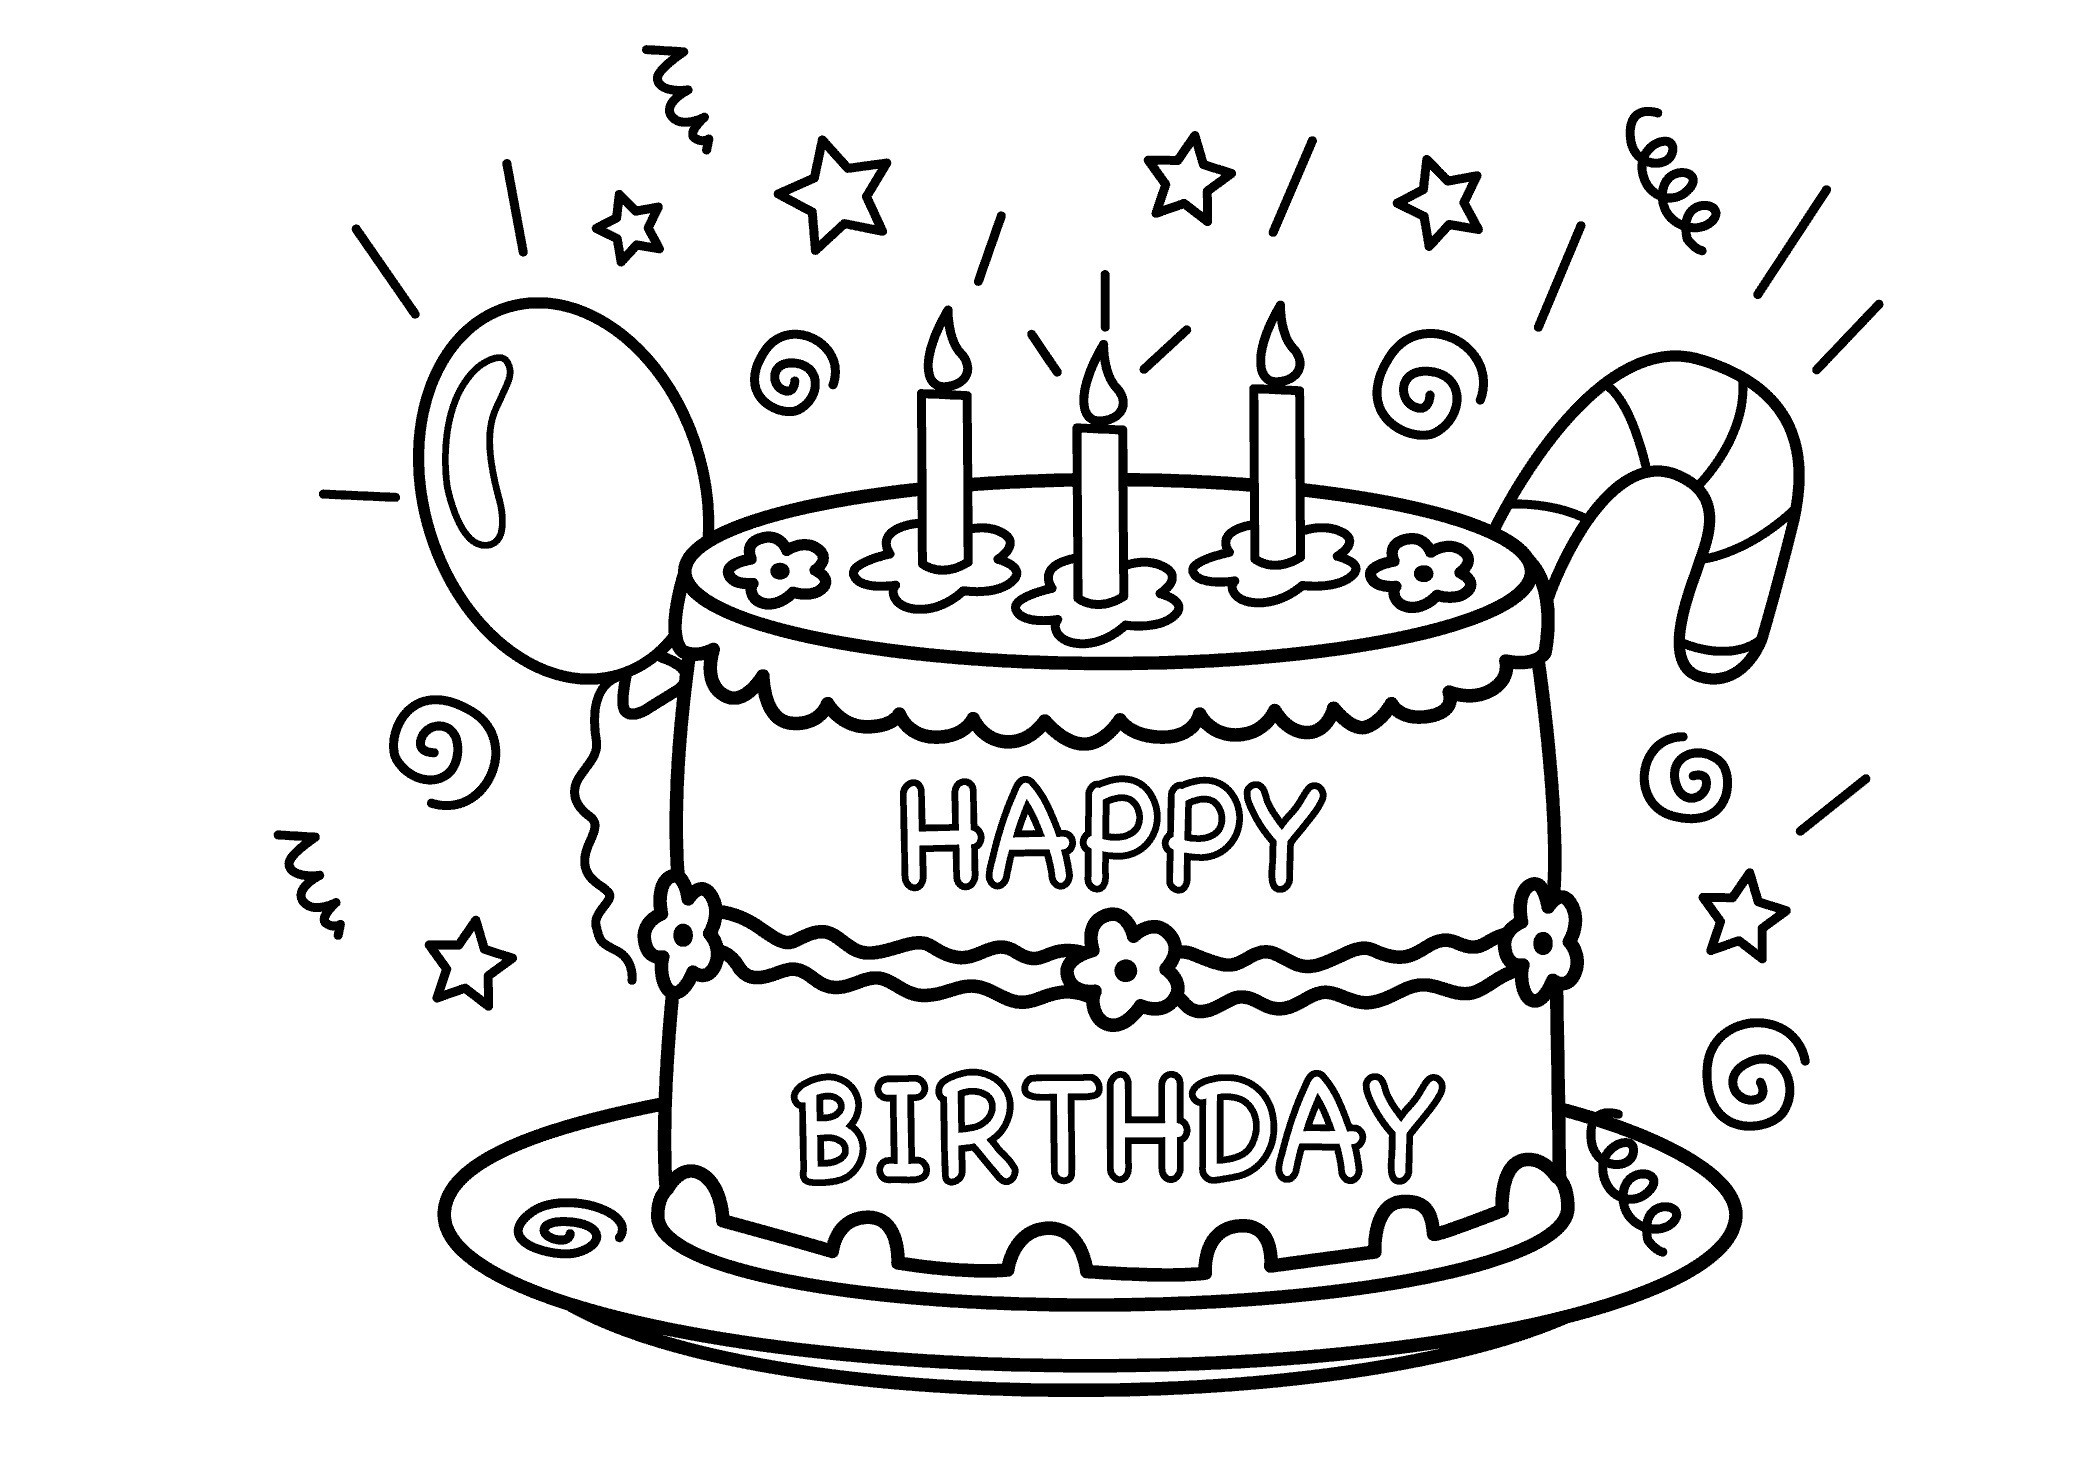 coloring pages for birthday cakes ; birthday-cake-coloring-page-fresh-free-printable-birthday-cake-coloring-pages-for-kids-of-birthday-cake-coloring-page